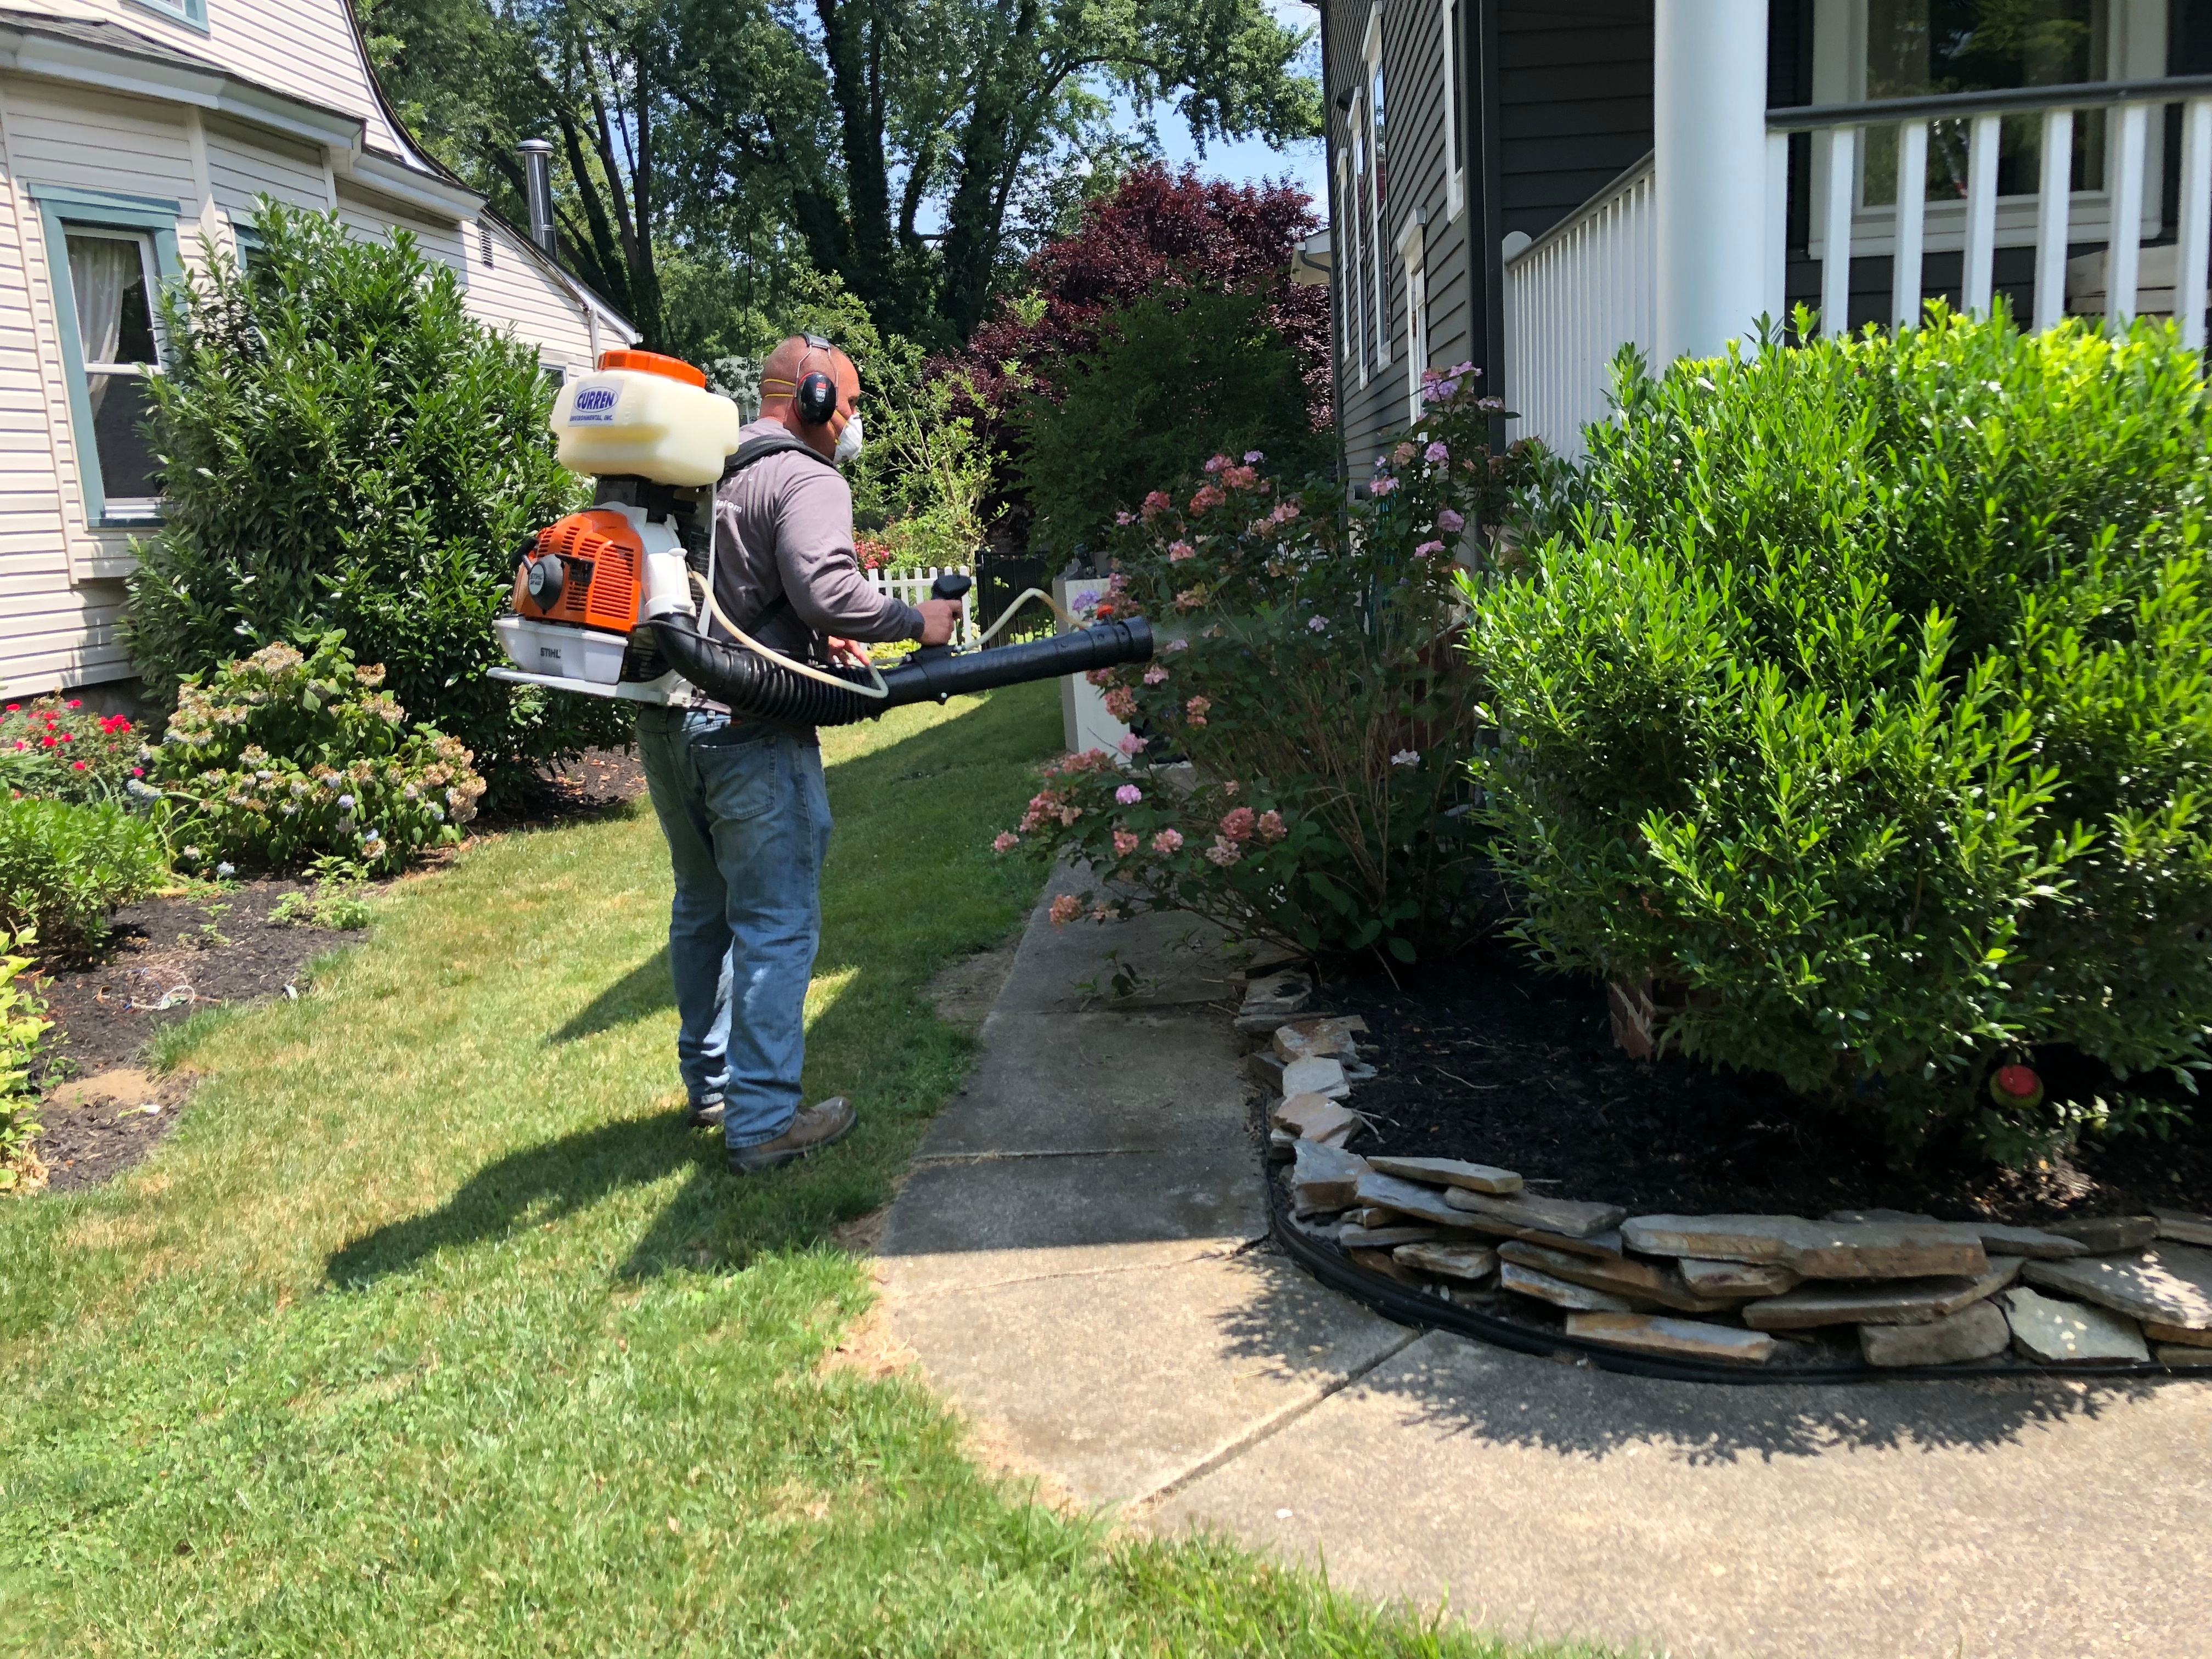 residential mosquito control service